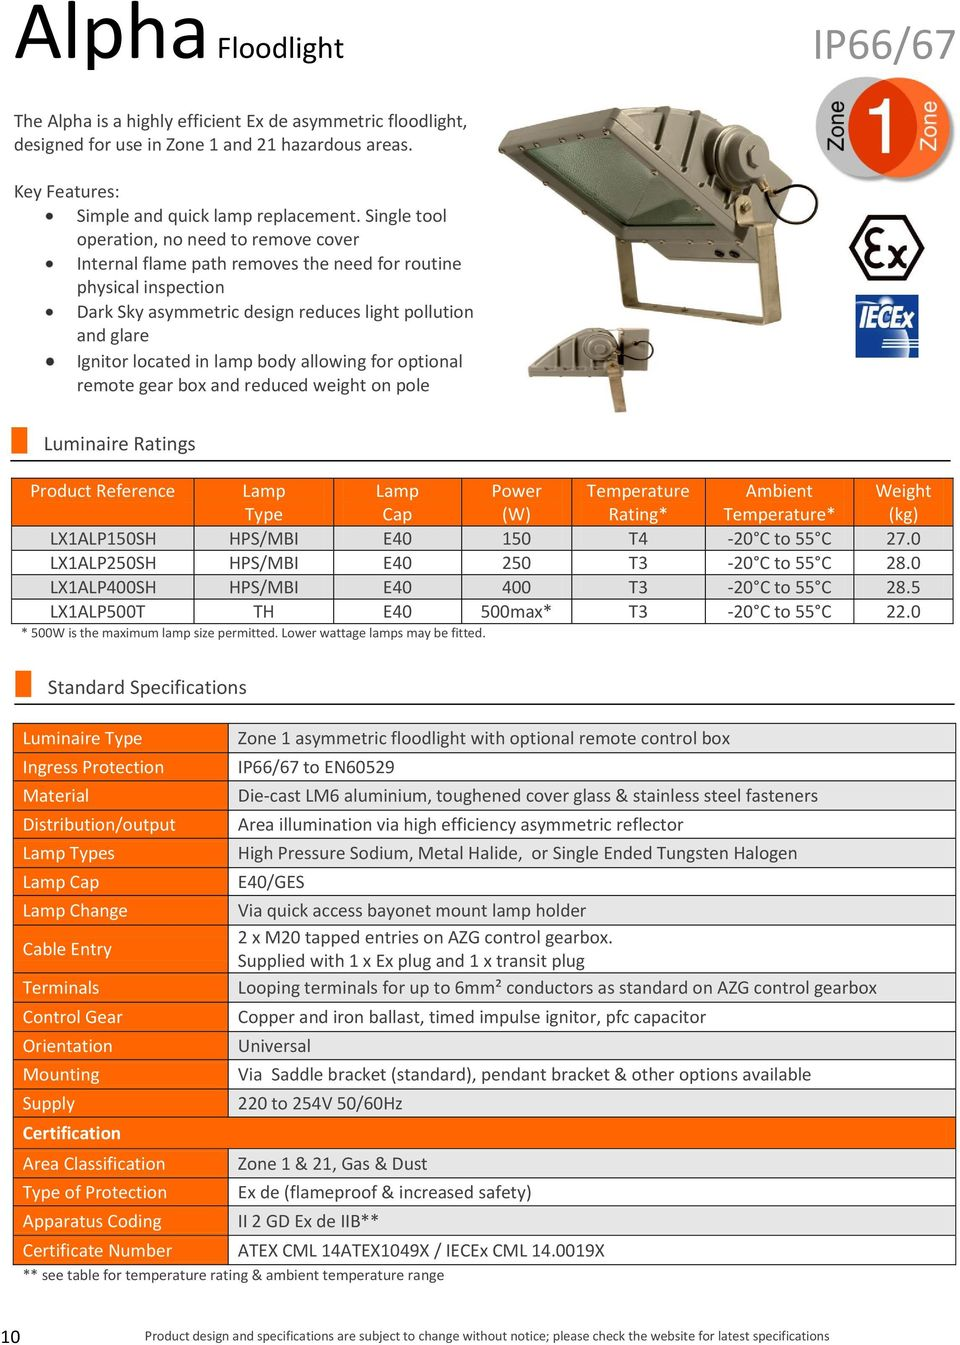 lamp body allowing for optional remote gear box and reduced weight on pole Luminaire Ratings Product Reference Lamp Type Lamp Cap Power (W) Temperature Rating* Ambient Temperature* Weight (kg)